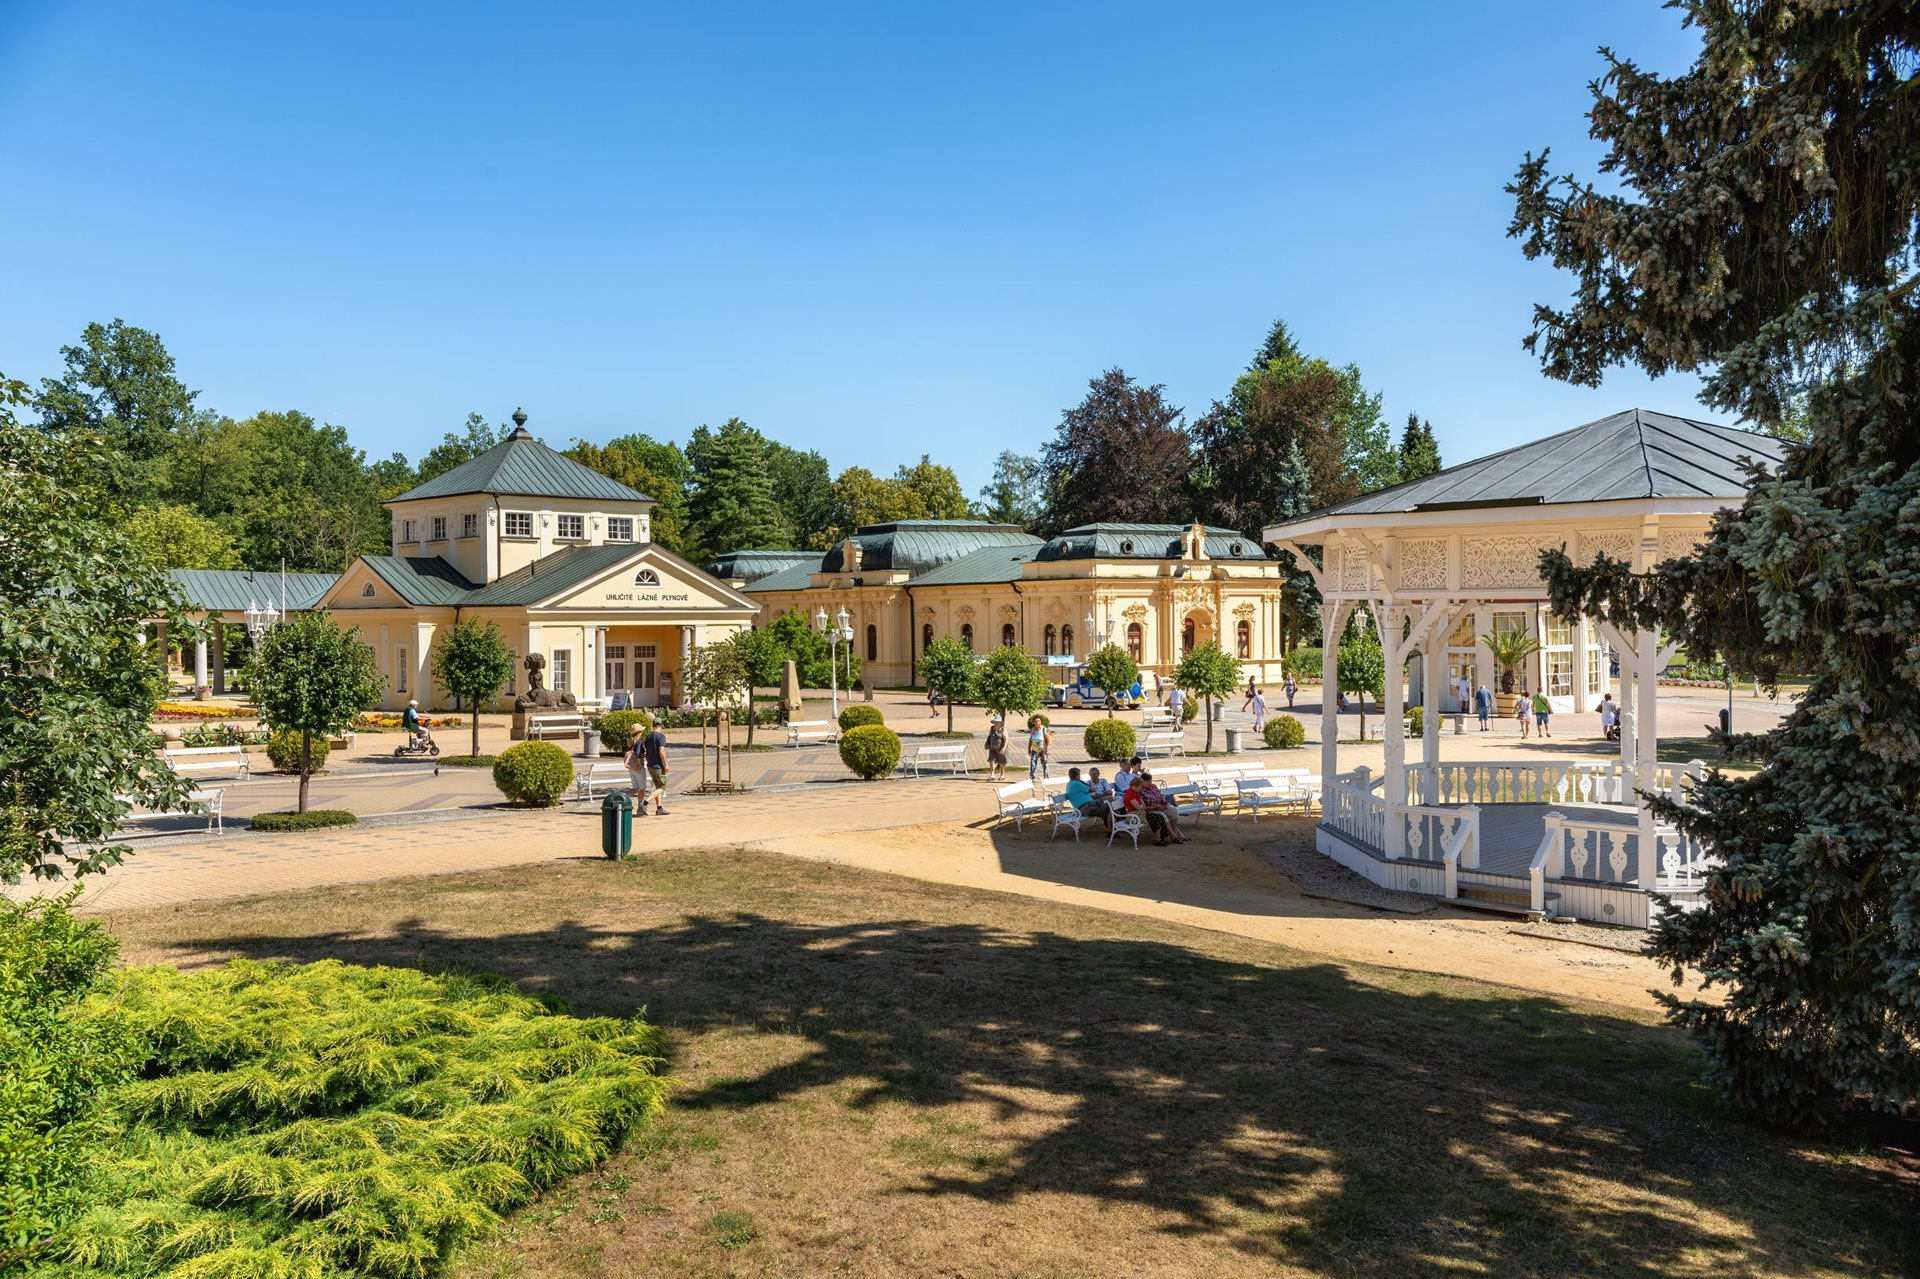 The Great Spas of Europe are heading for the World Heritage List